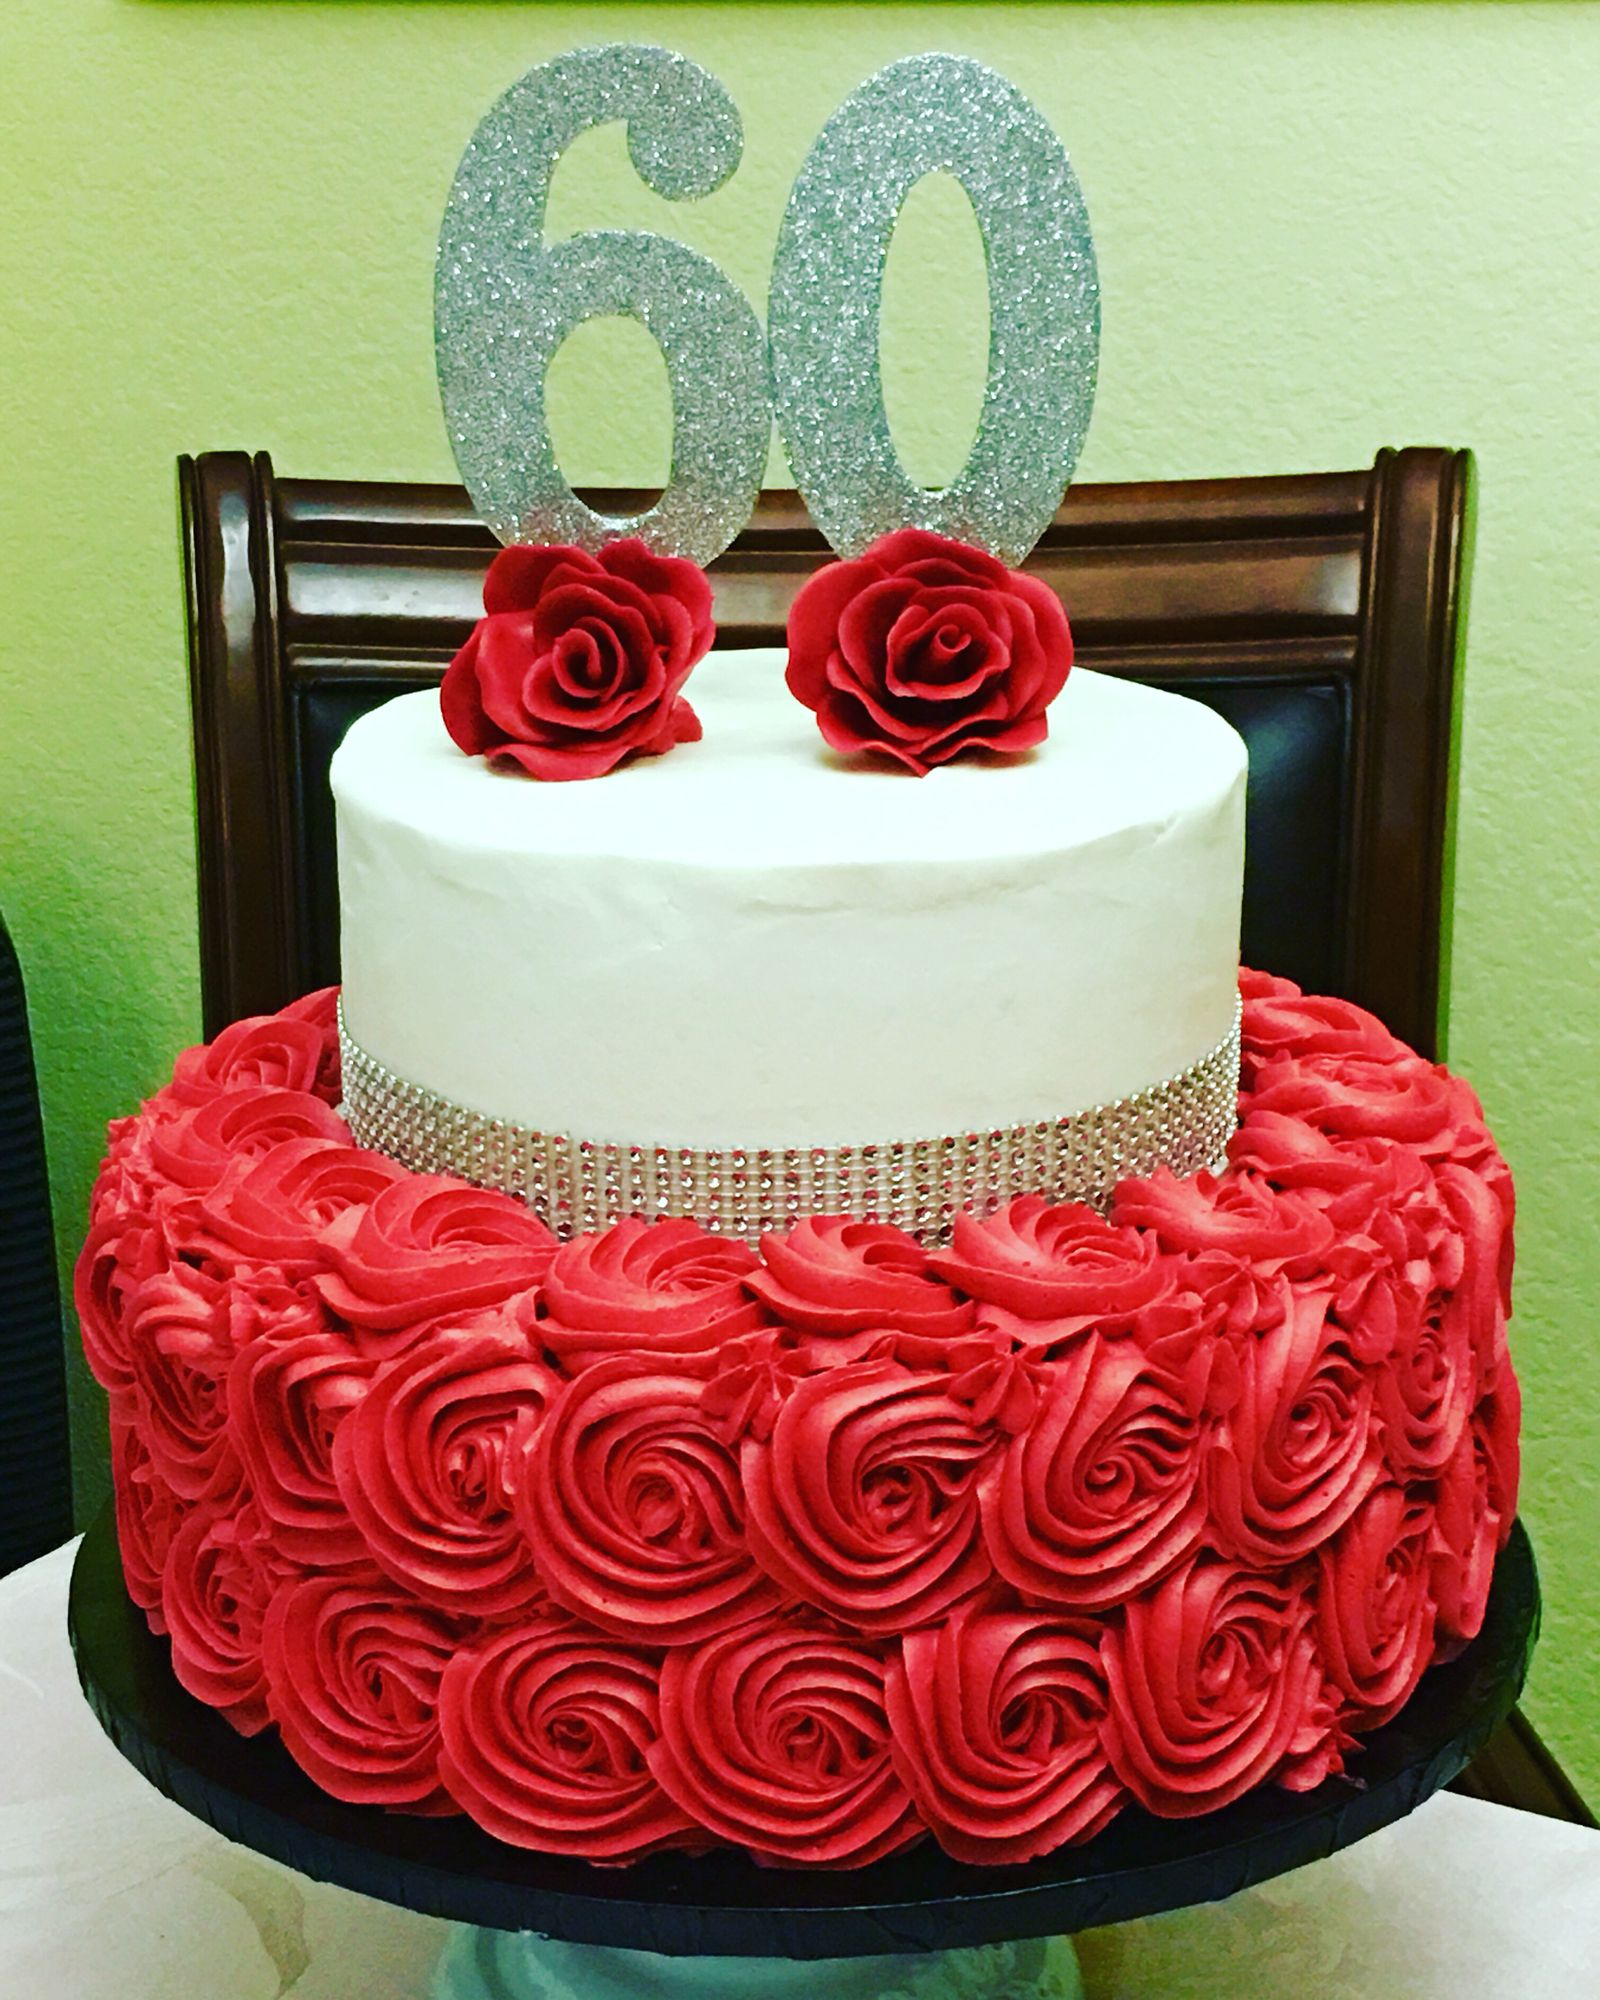 Groovy 60Th Birthday Cake Buttercream Red And Silver Rosettes With Funny Birthday Cards Online Inifodamsfinfo